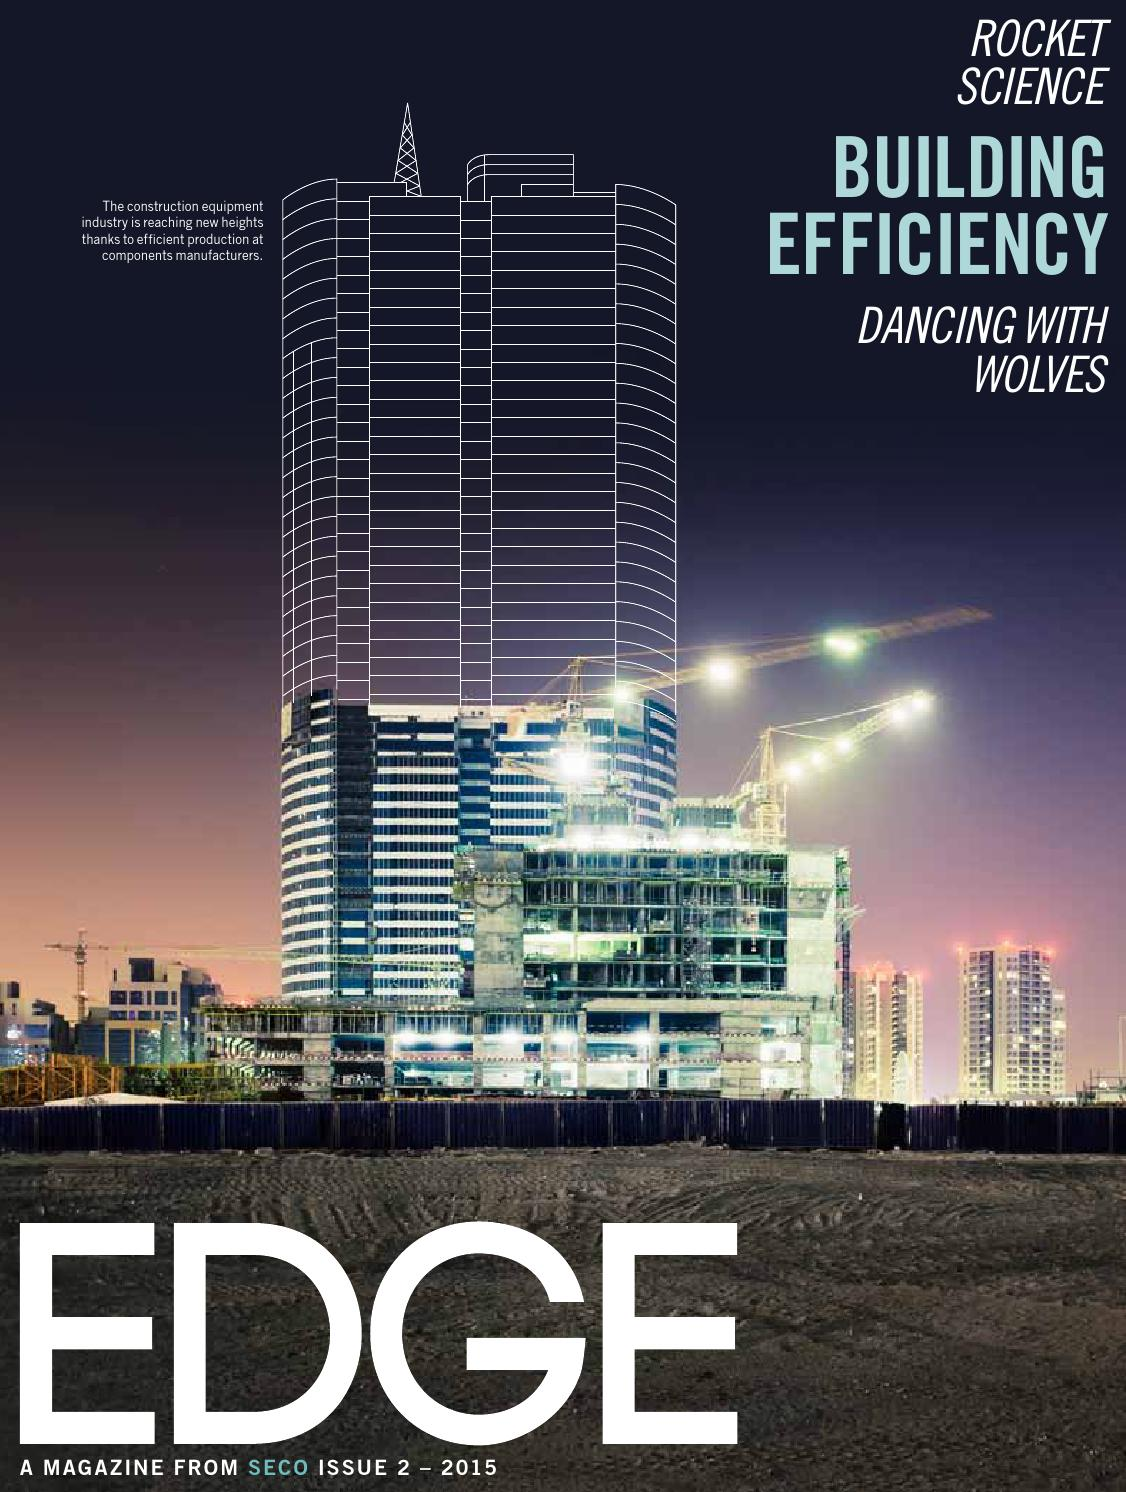 EDGE Magazine 2015-2 by Seco Tools - issuu